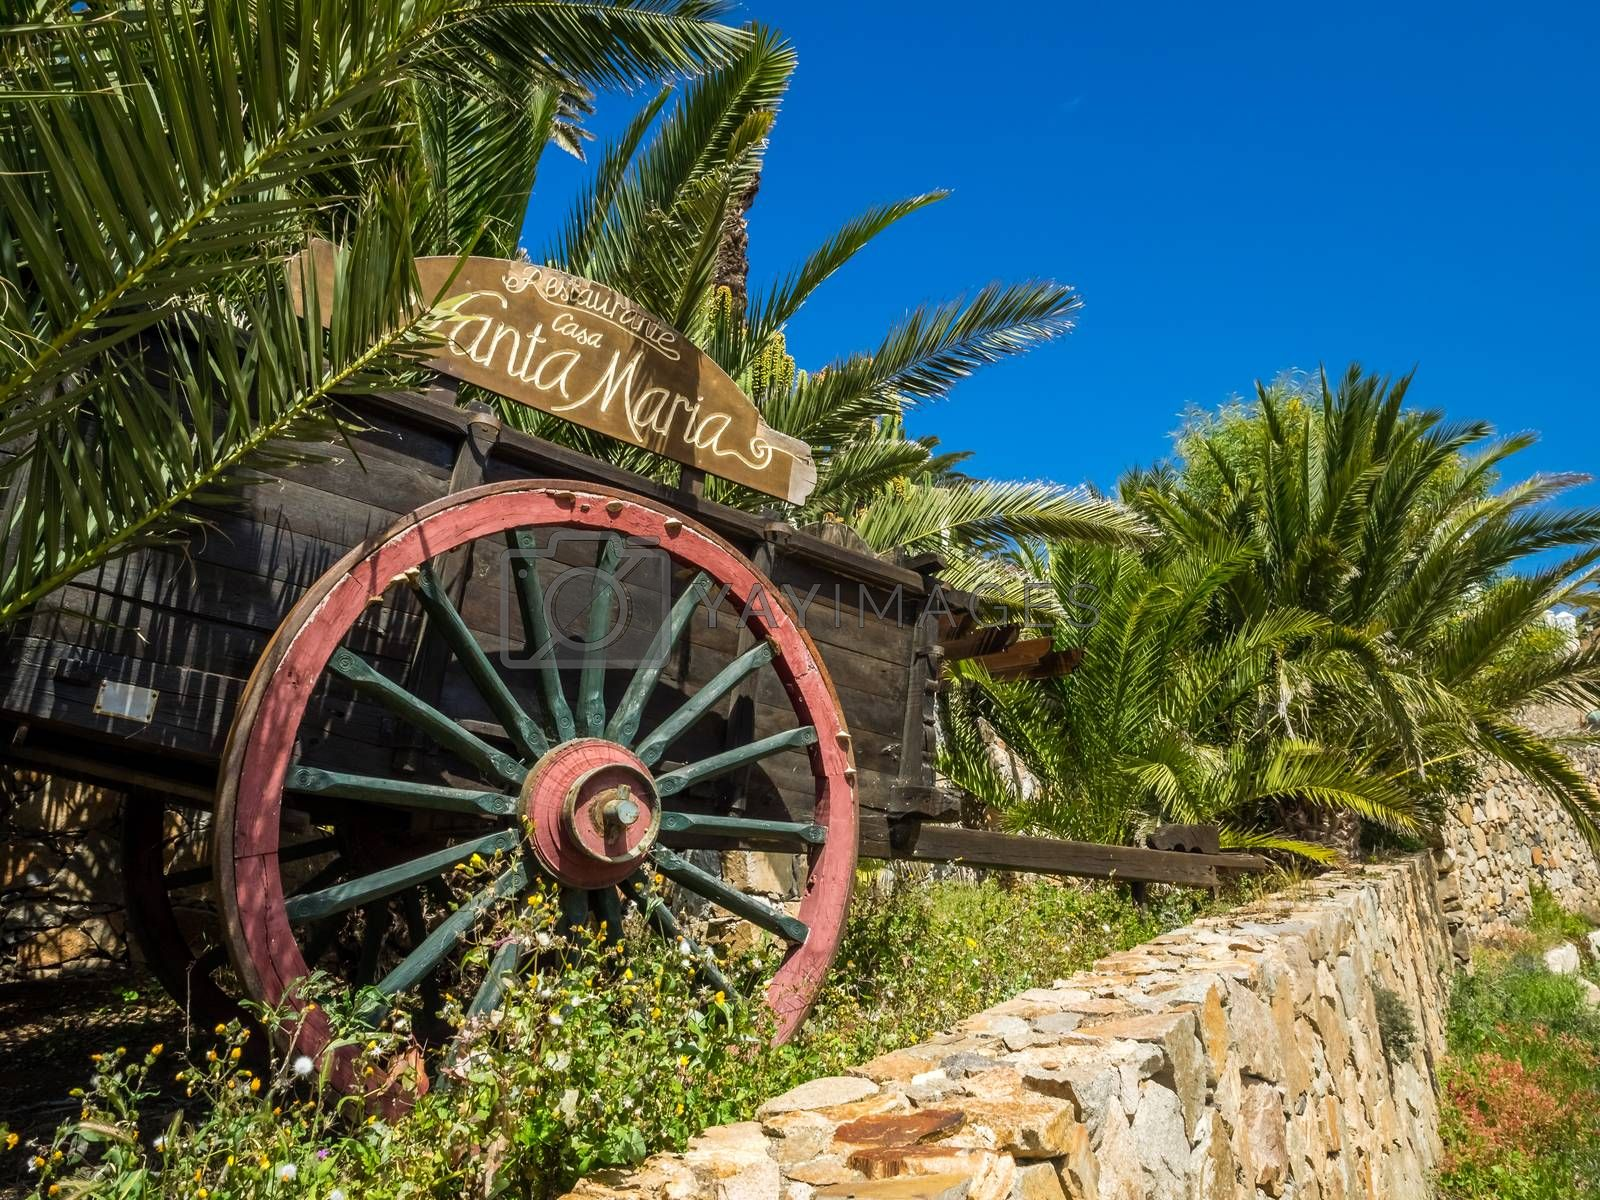 Old Cart Wheel in front of a restaurant in Betancuria, an old capital of Fuerteventura, Canary islands, Spain. Picture taken 13 April 2016